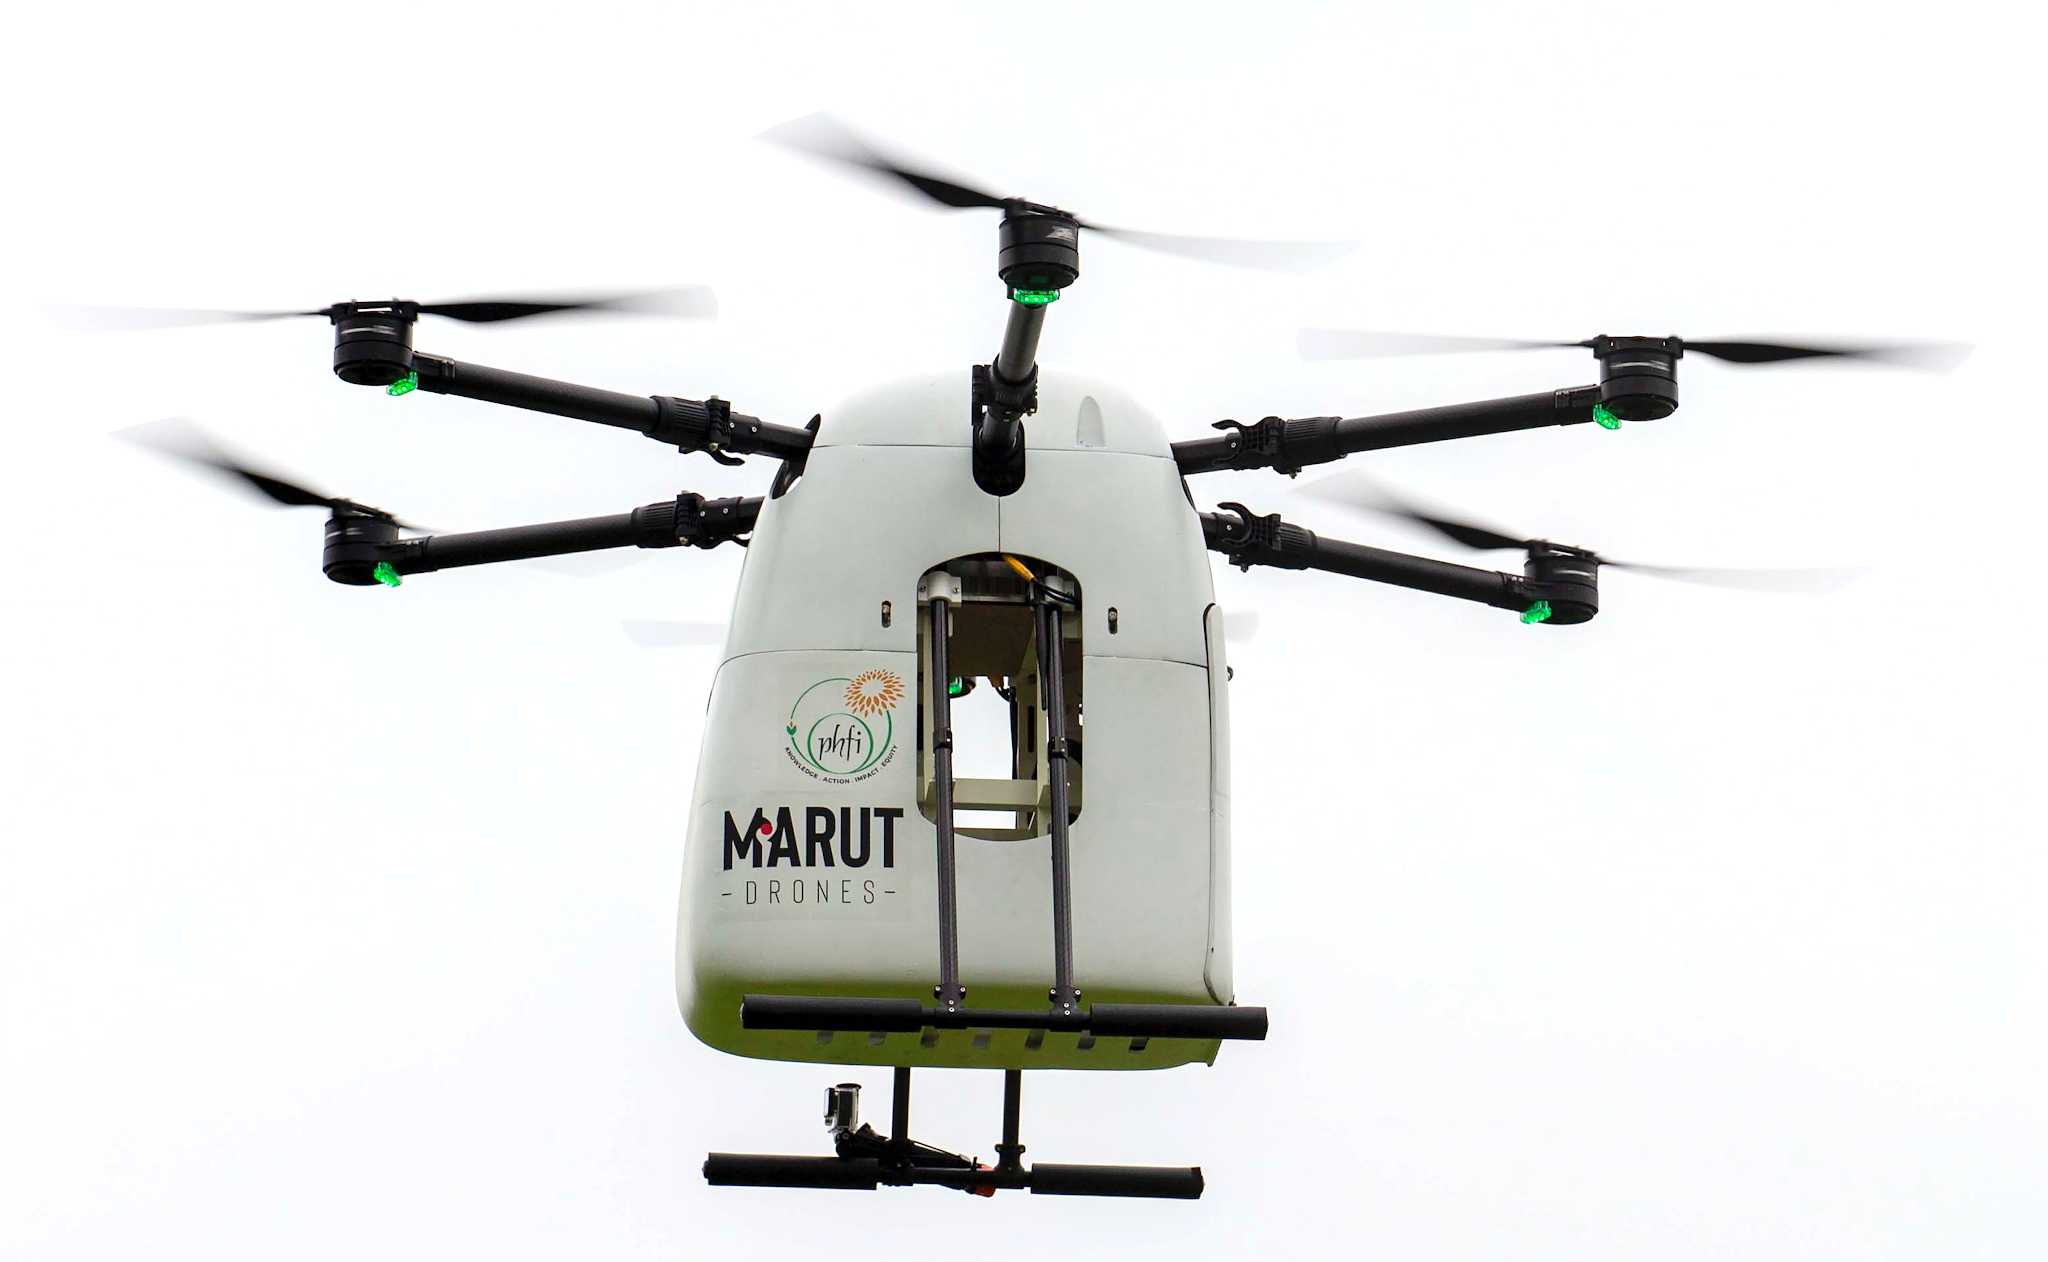 Medicines From The Sky - India's 1st Drone Medicine Delivery Project  Launched at Vikarabad, Telangana   IndianWeb2.com